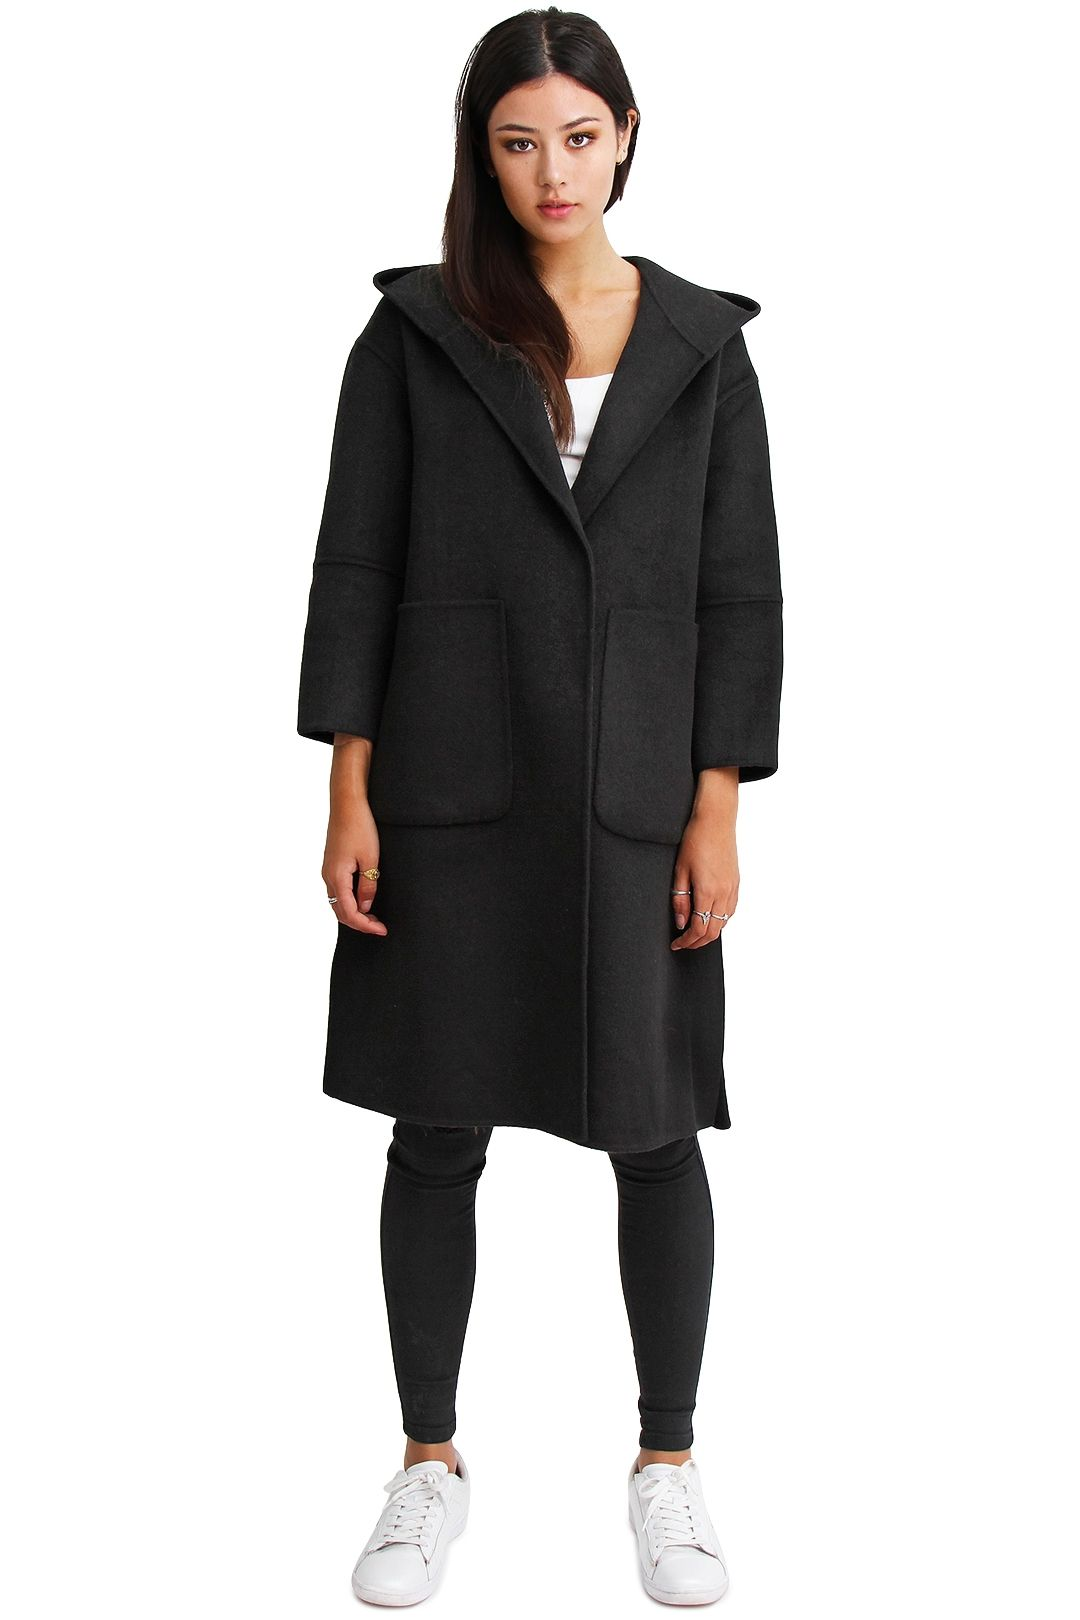 Belle and Bloom Walk This Way Coat Pure Black